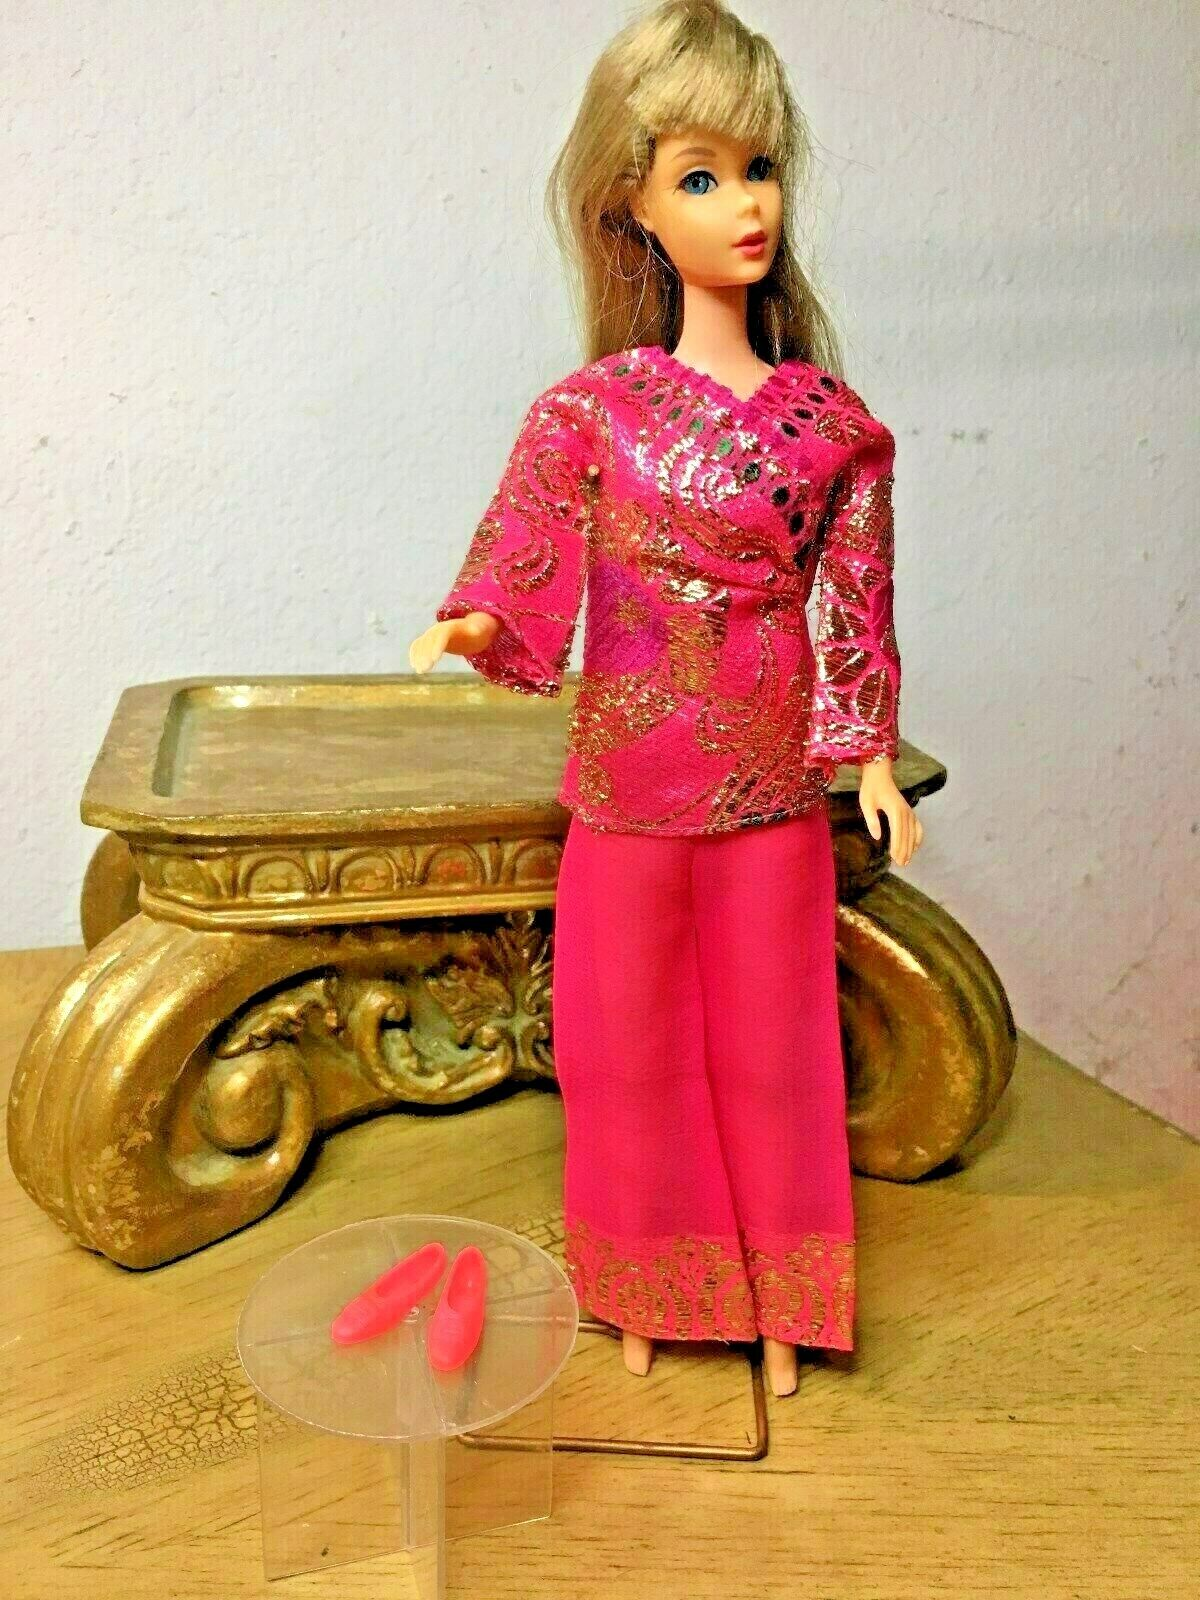 Vintage Barbie BRIGHT 'n BROCADE Outfit  1786 schuhe Great Condition No Doll